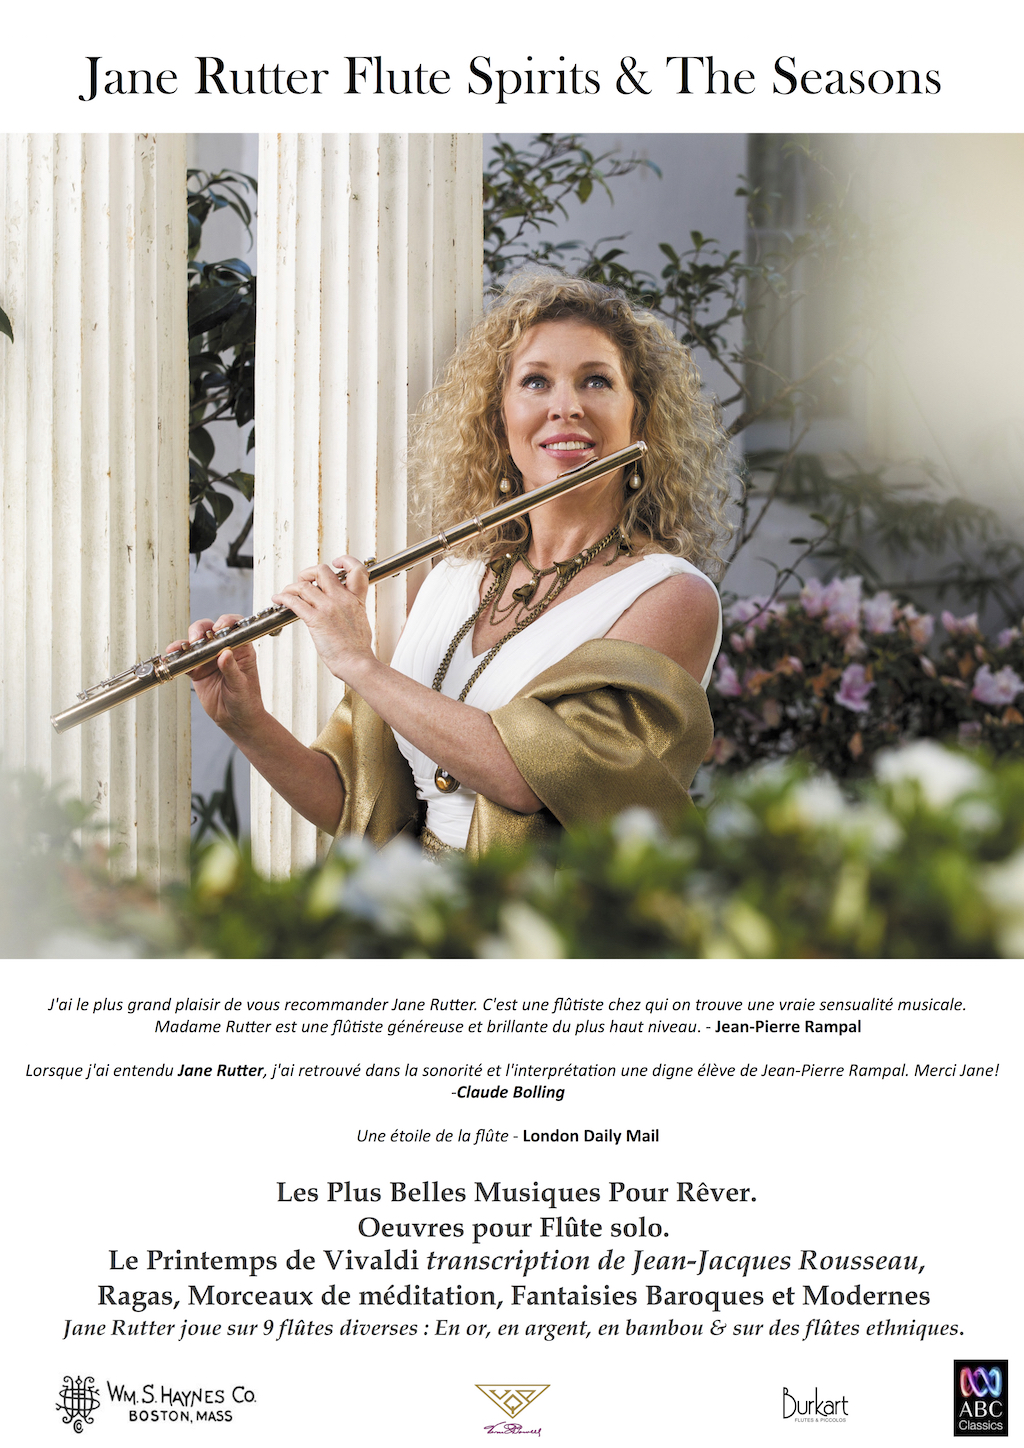 flute-spirits-the-seasons-france-2016-convention